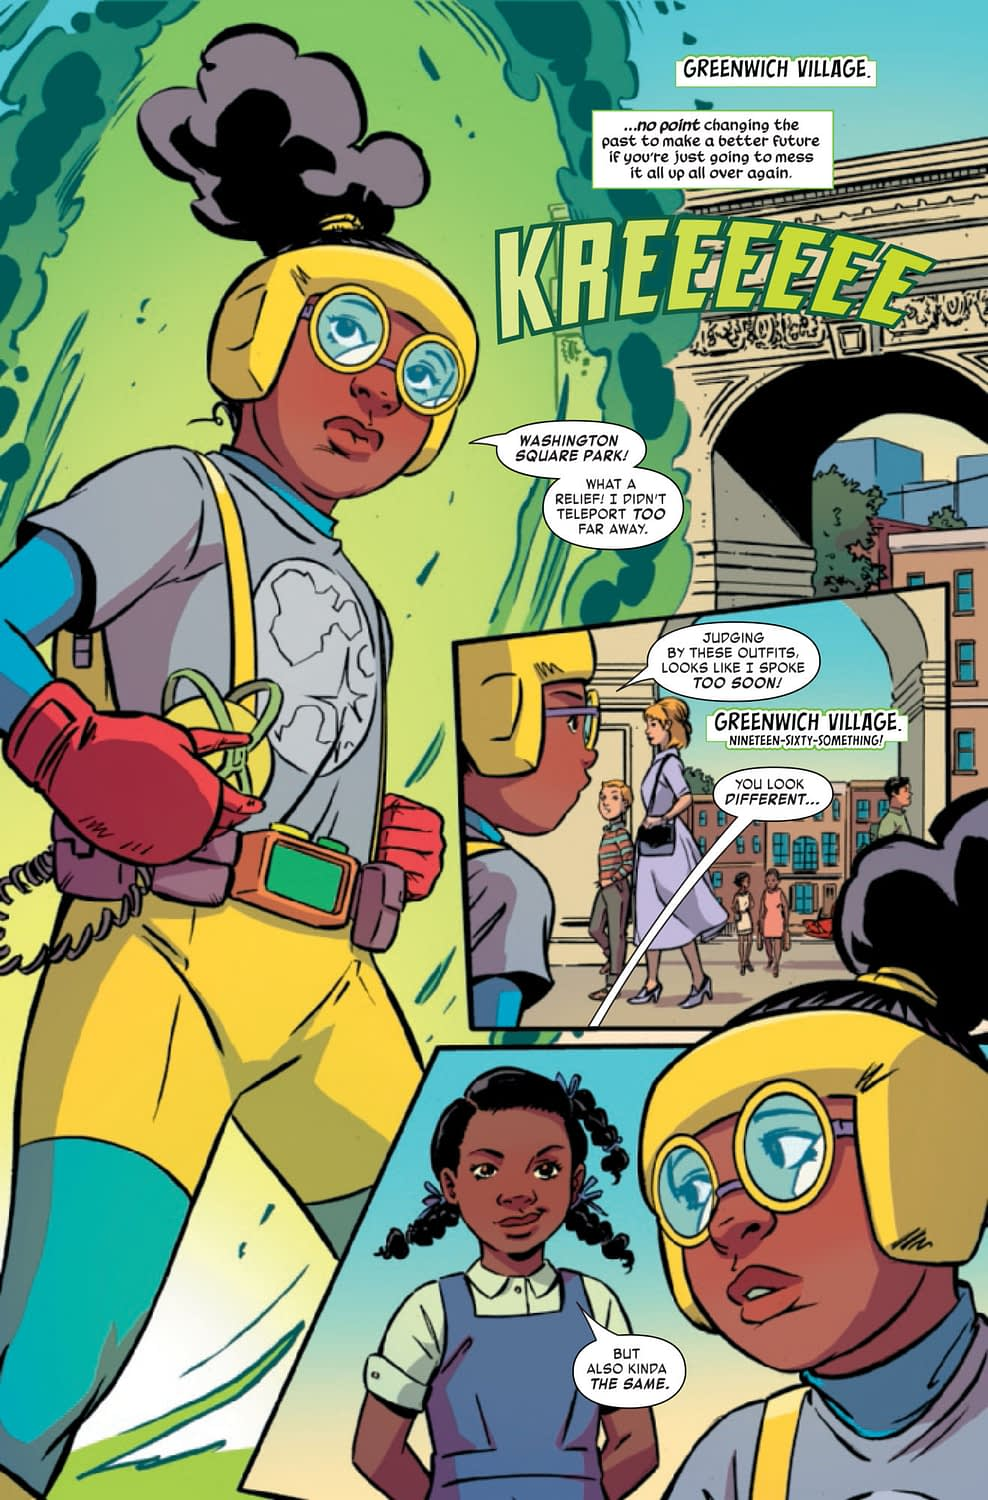 Moon Girl Pulls a Marty McFly - Moon Girl and Devil Dinosaur #44 Preview